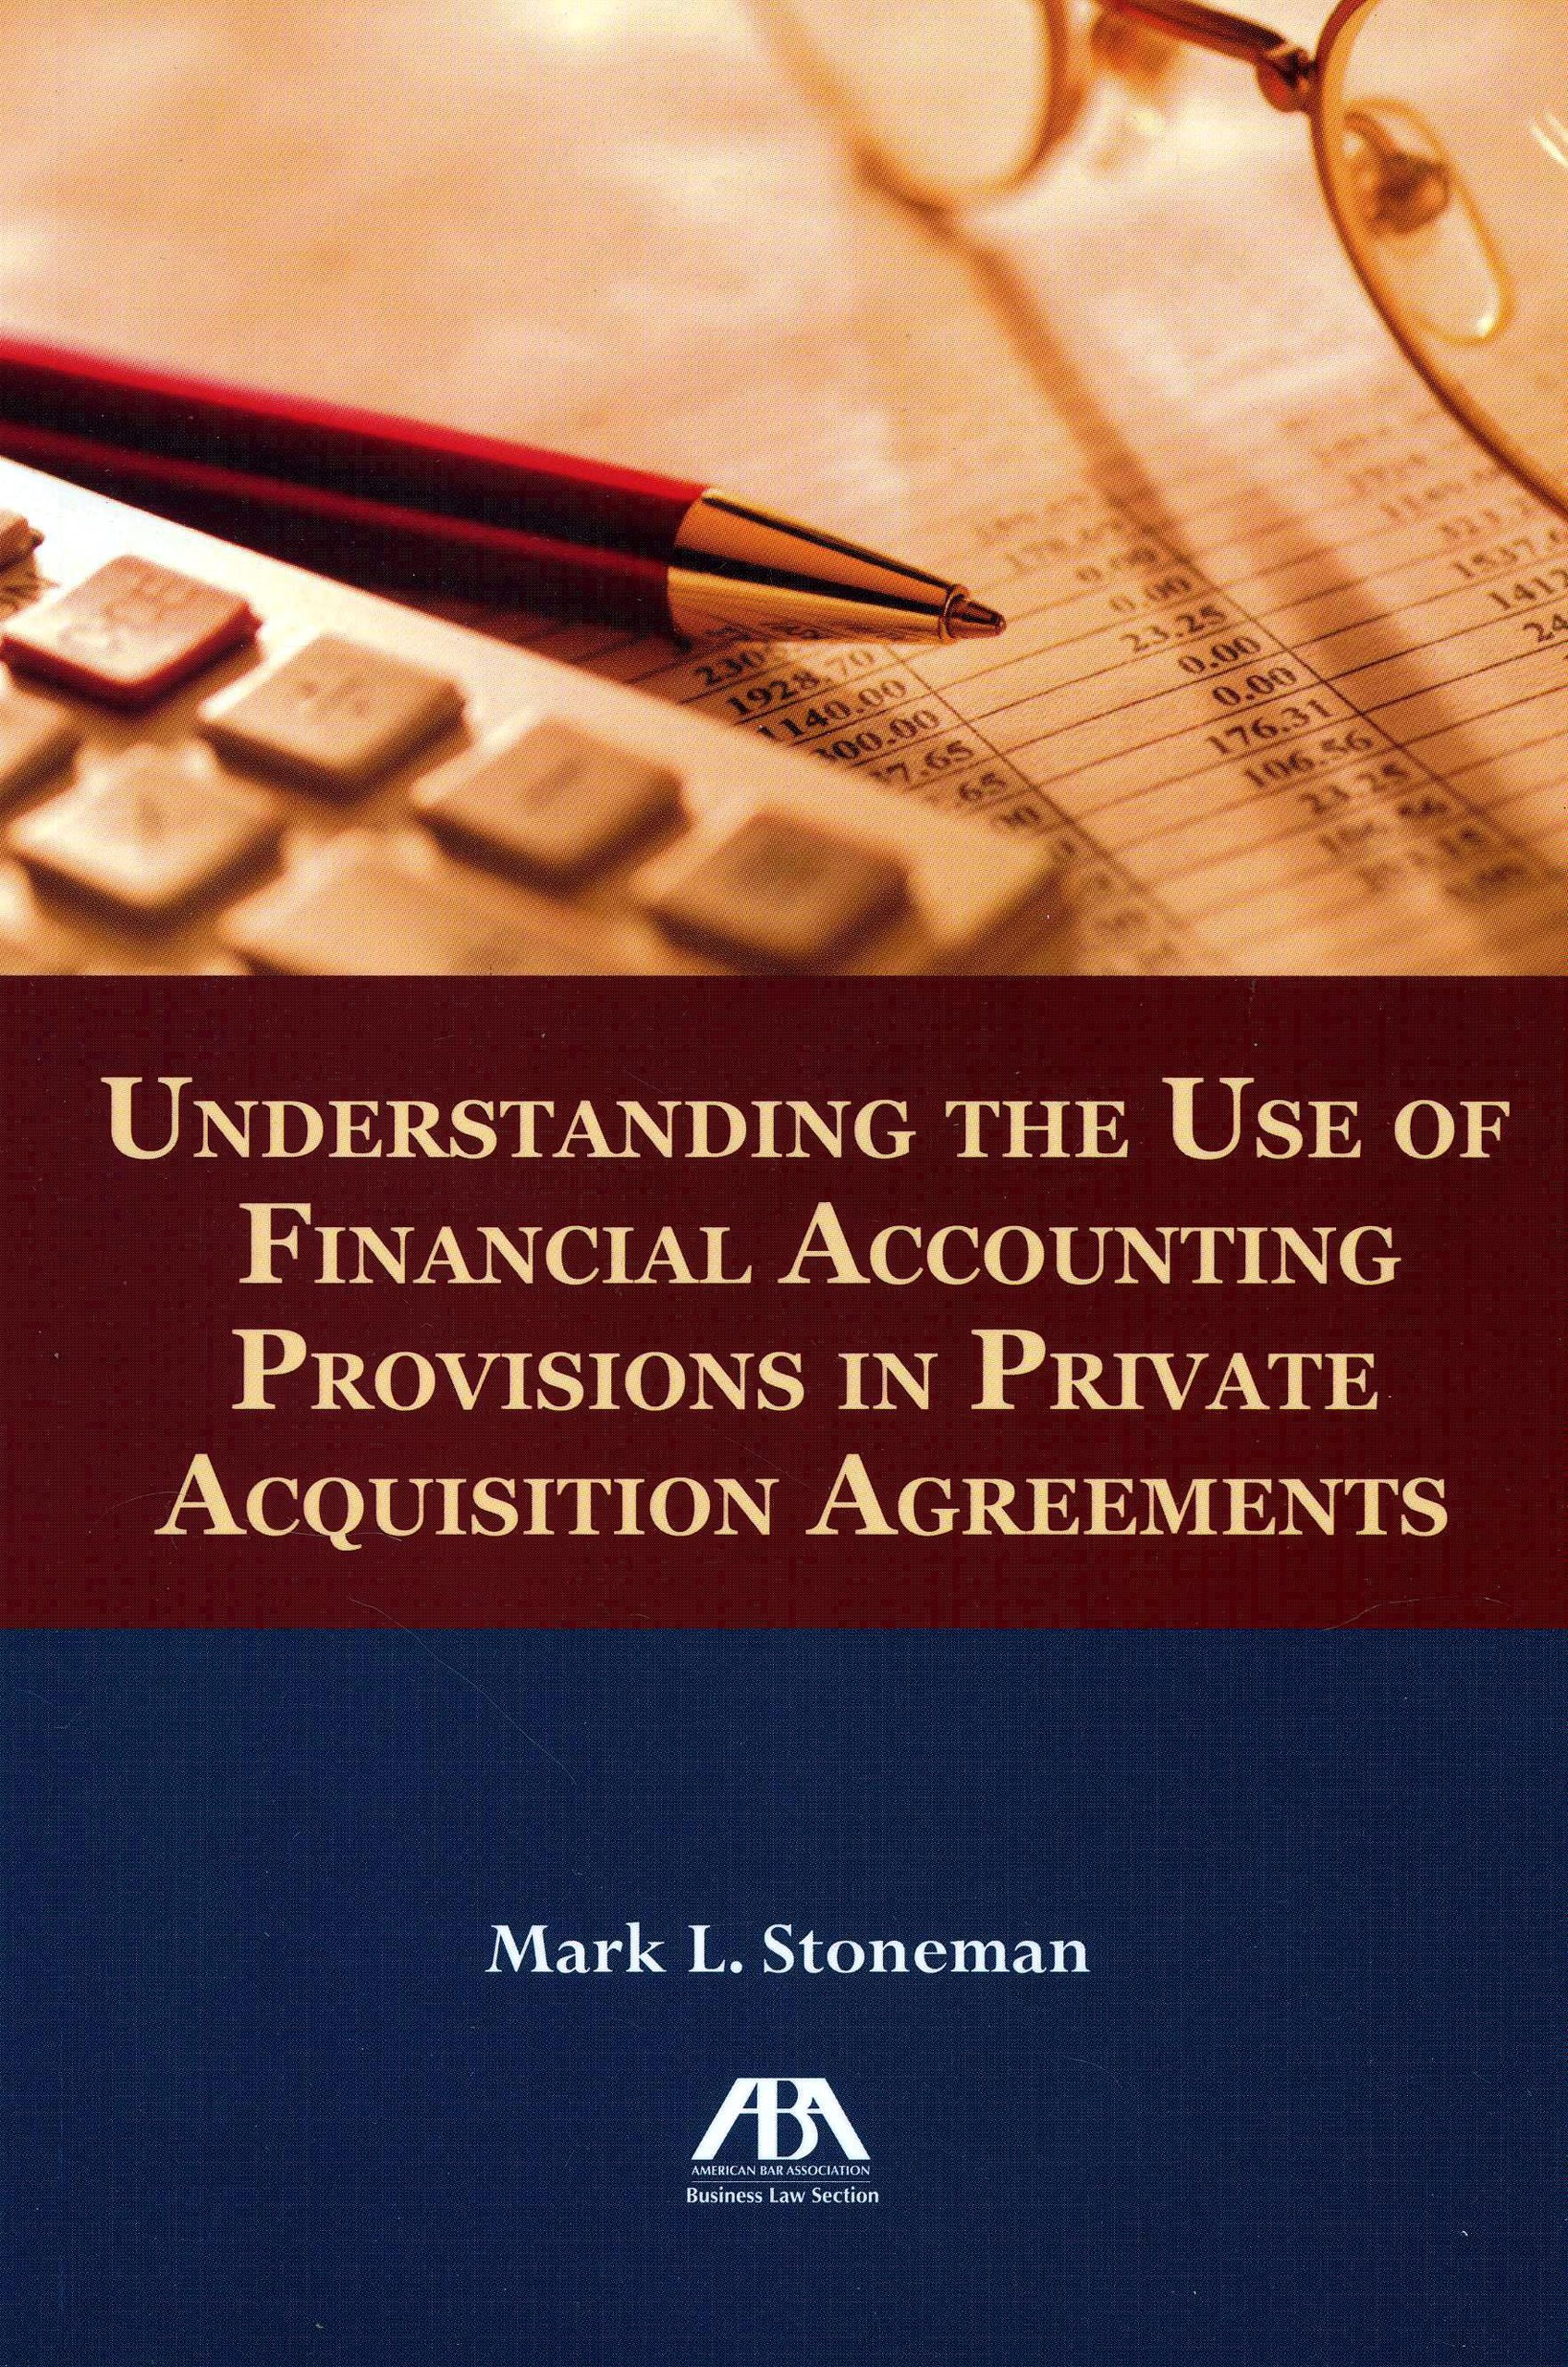 Understanding The Use Of Financial Accounting Provisions In Private